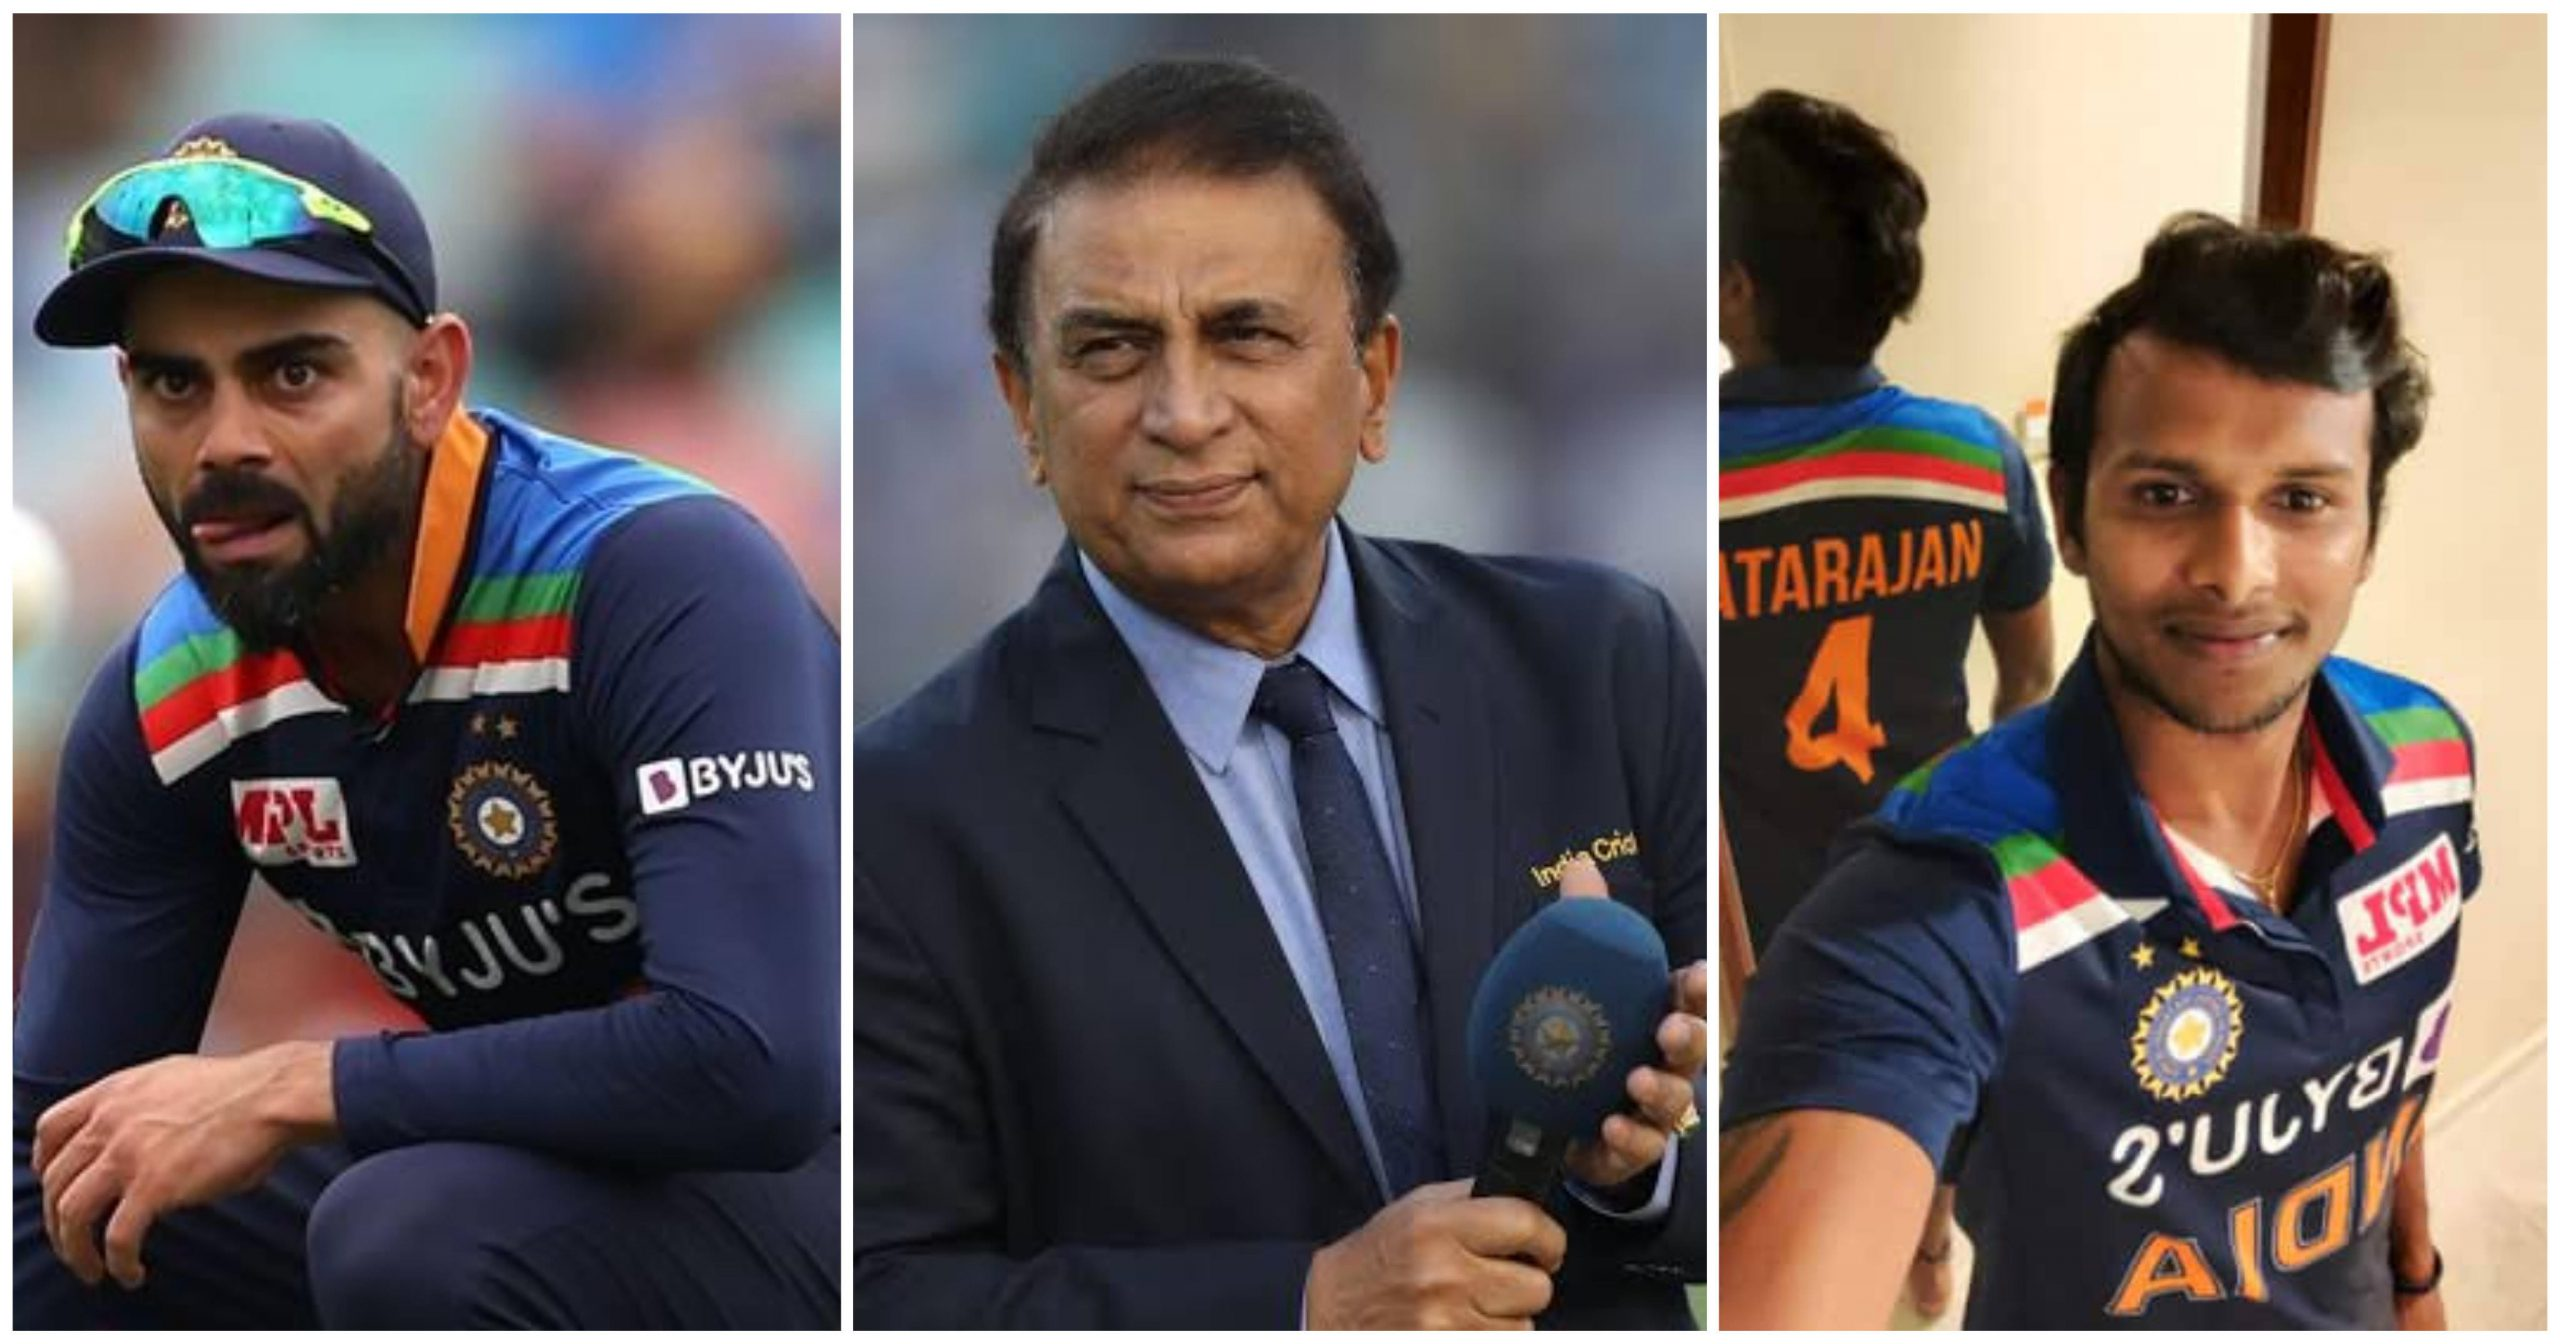 Sunil Gavaskar raises questions over Virat Kohli's paternity leave